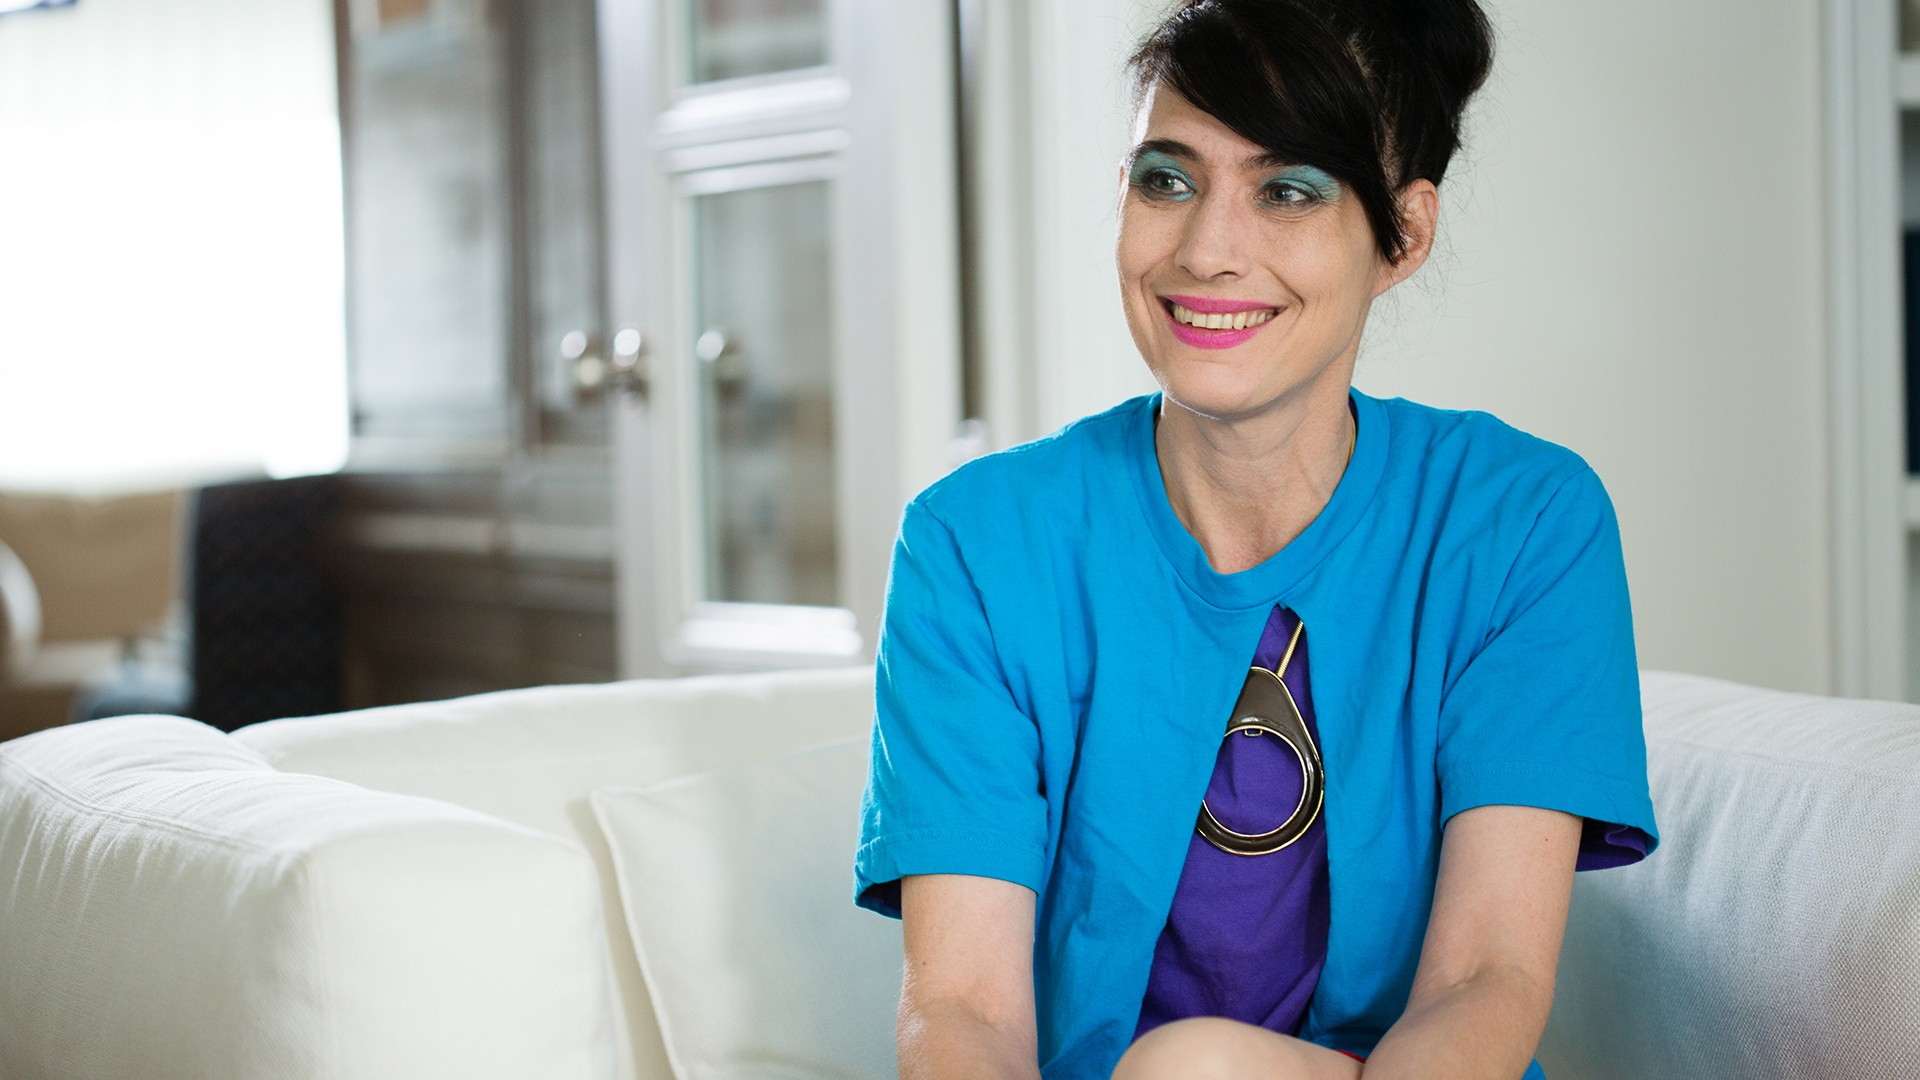 Kathleen Hanna on Tokenism, Therapy, and Where Riot Grrrl Went Wrong